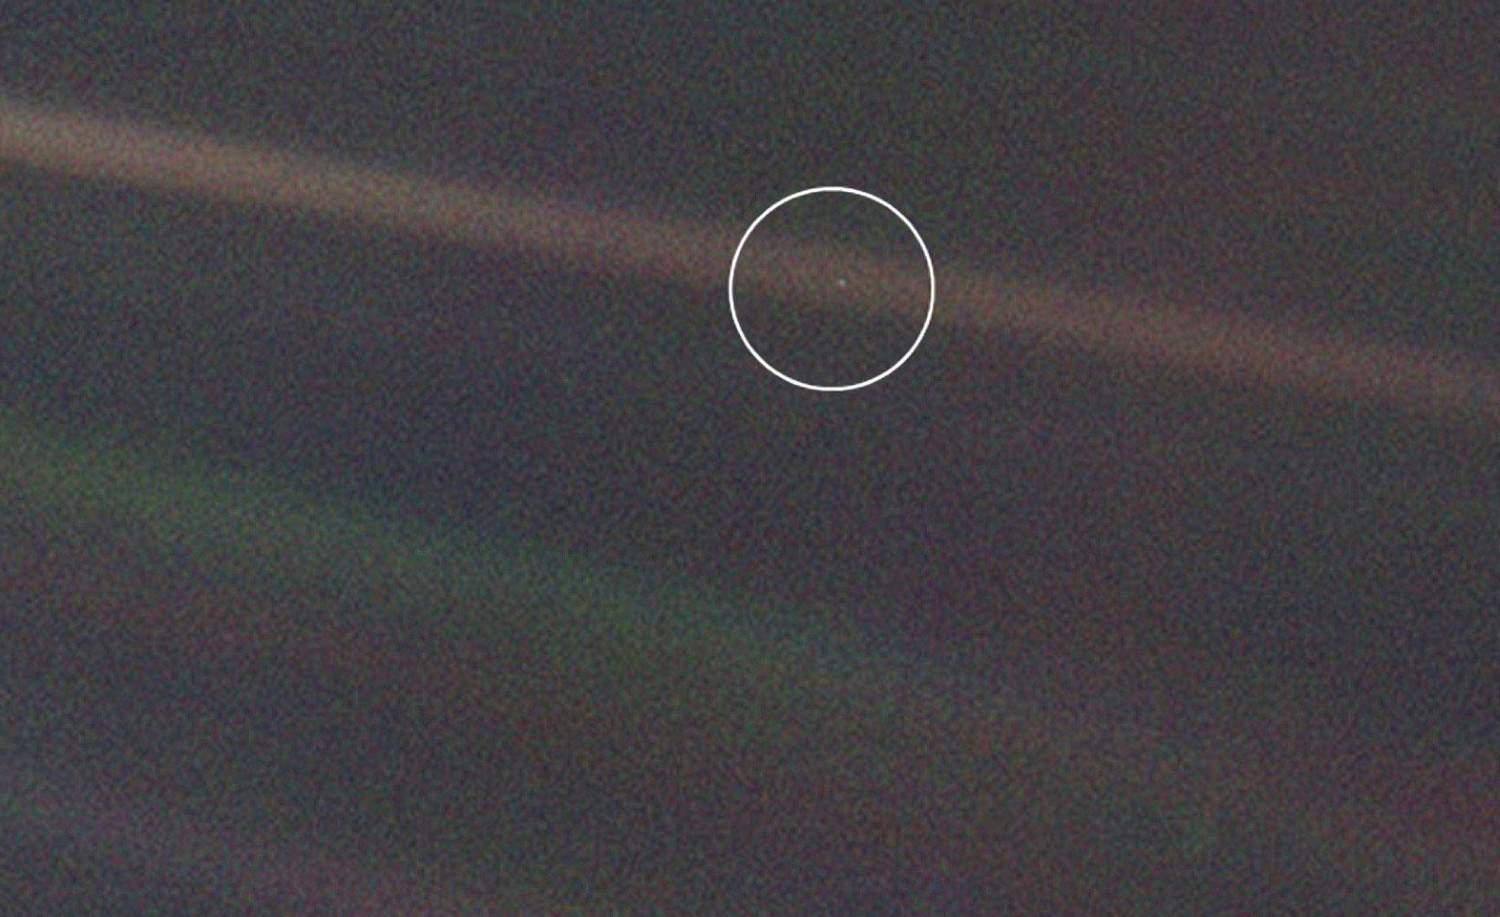 Pale-Blue-Dot-NASA